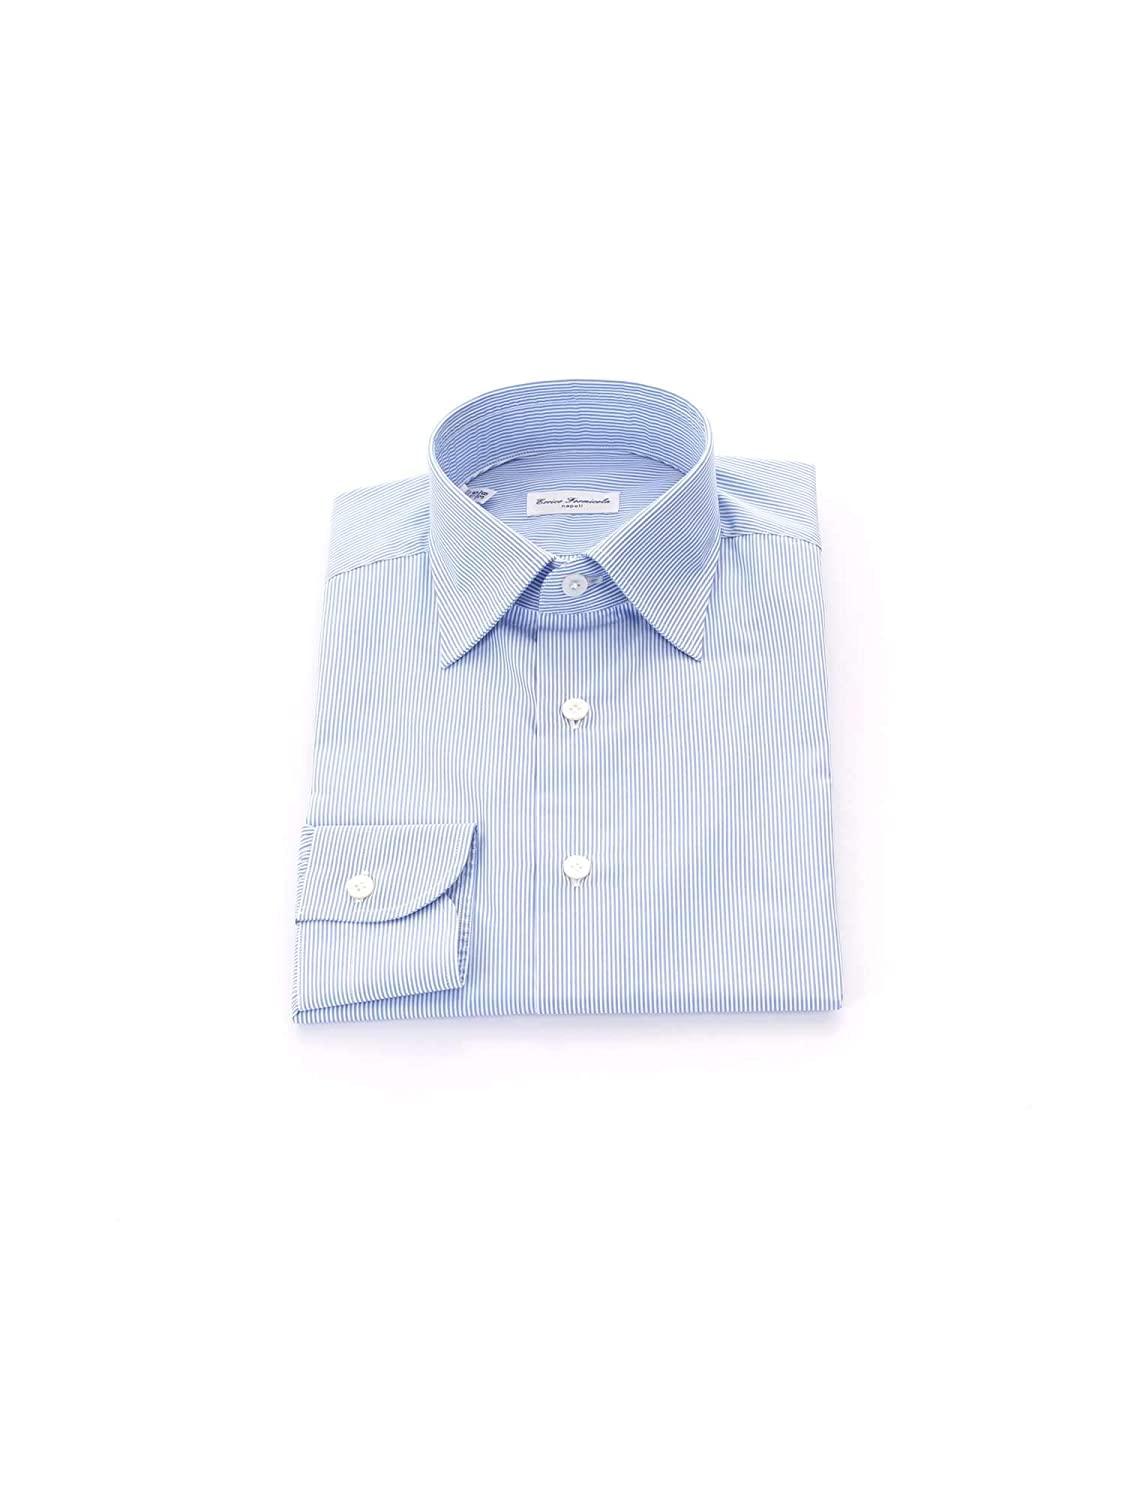 MultiCouleure  Errico Formicola 52133 5 Shirts Homme